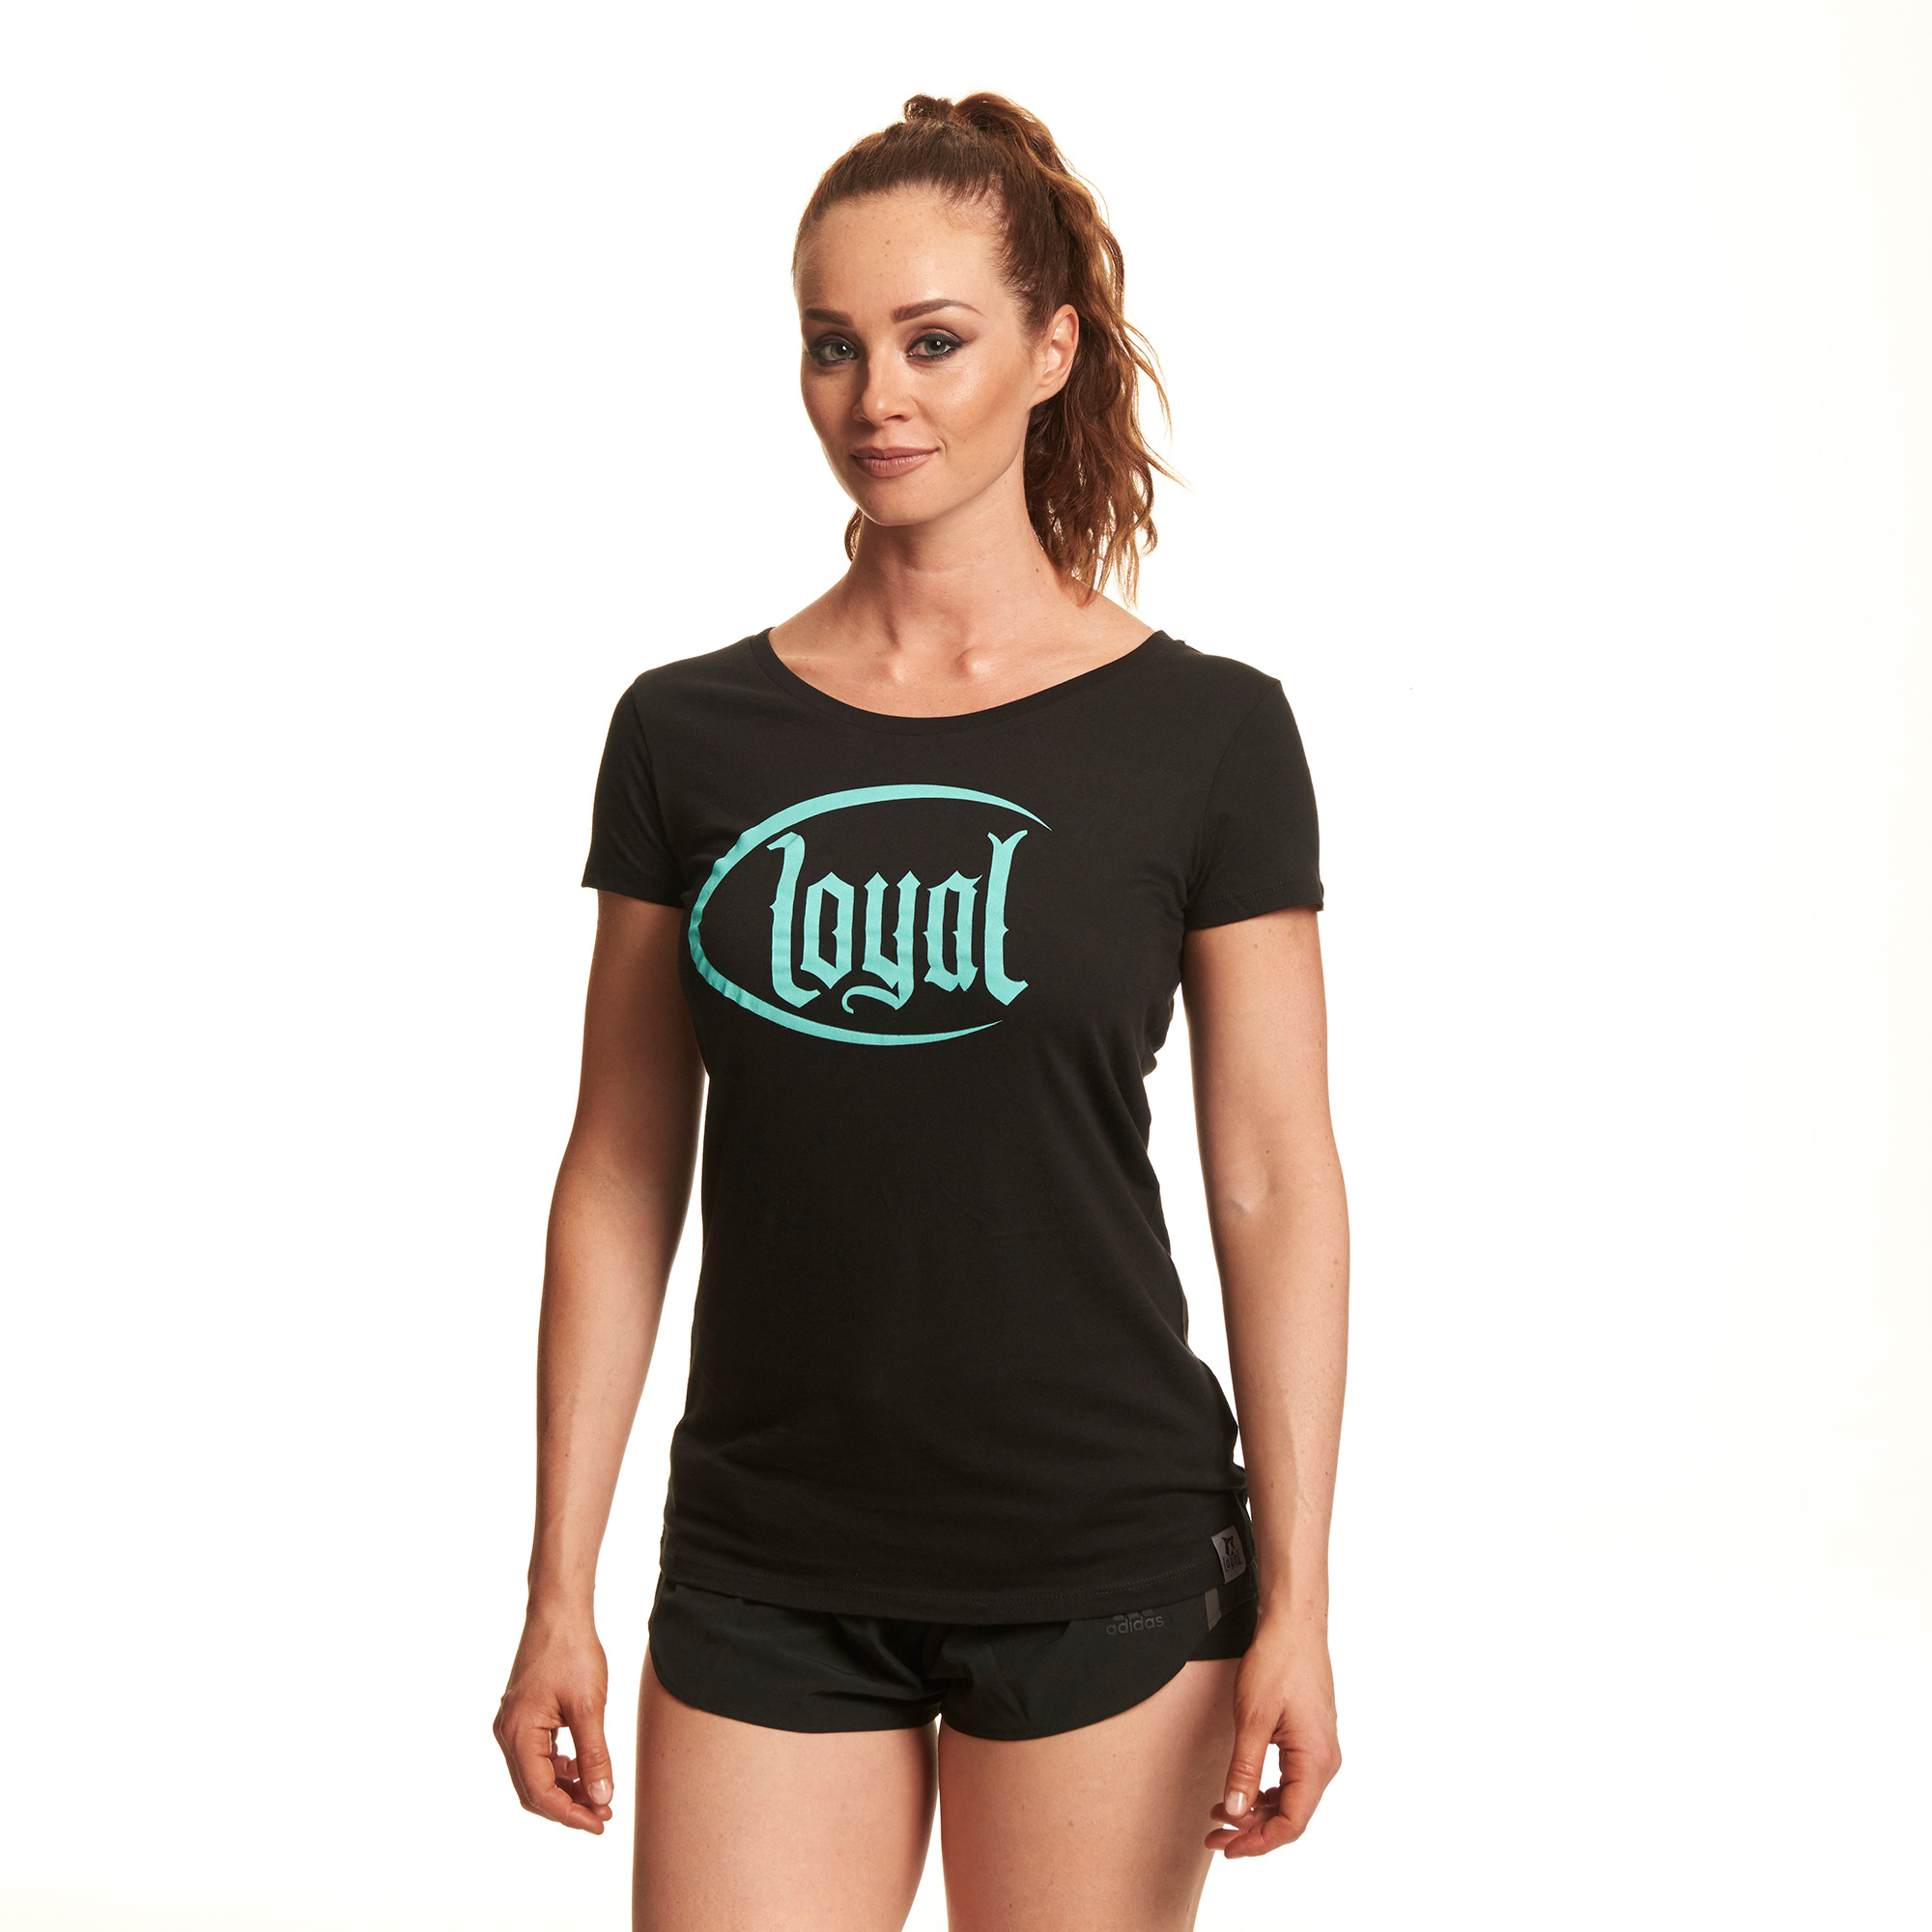 Loyal Circle Mint von Kontra K - Girlie Shirt jetzt im Loyal Shop